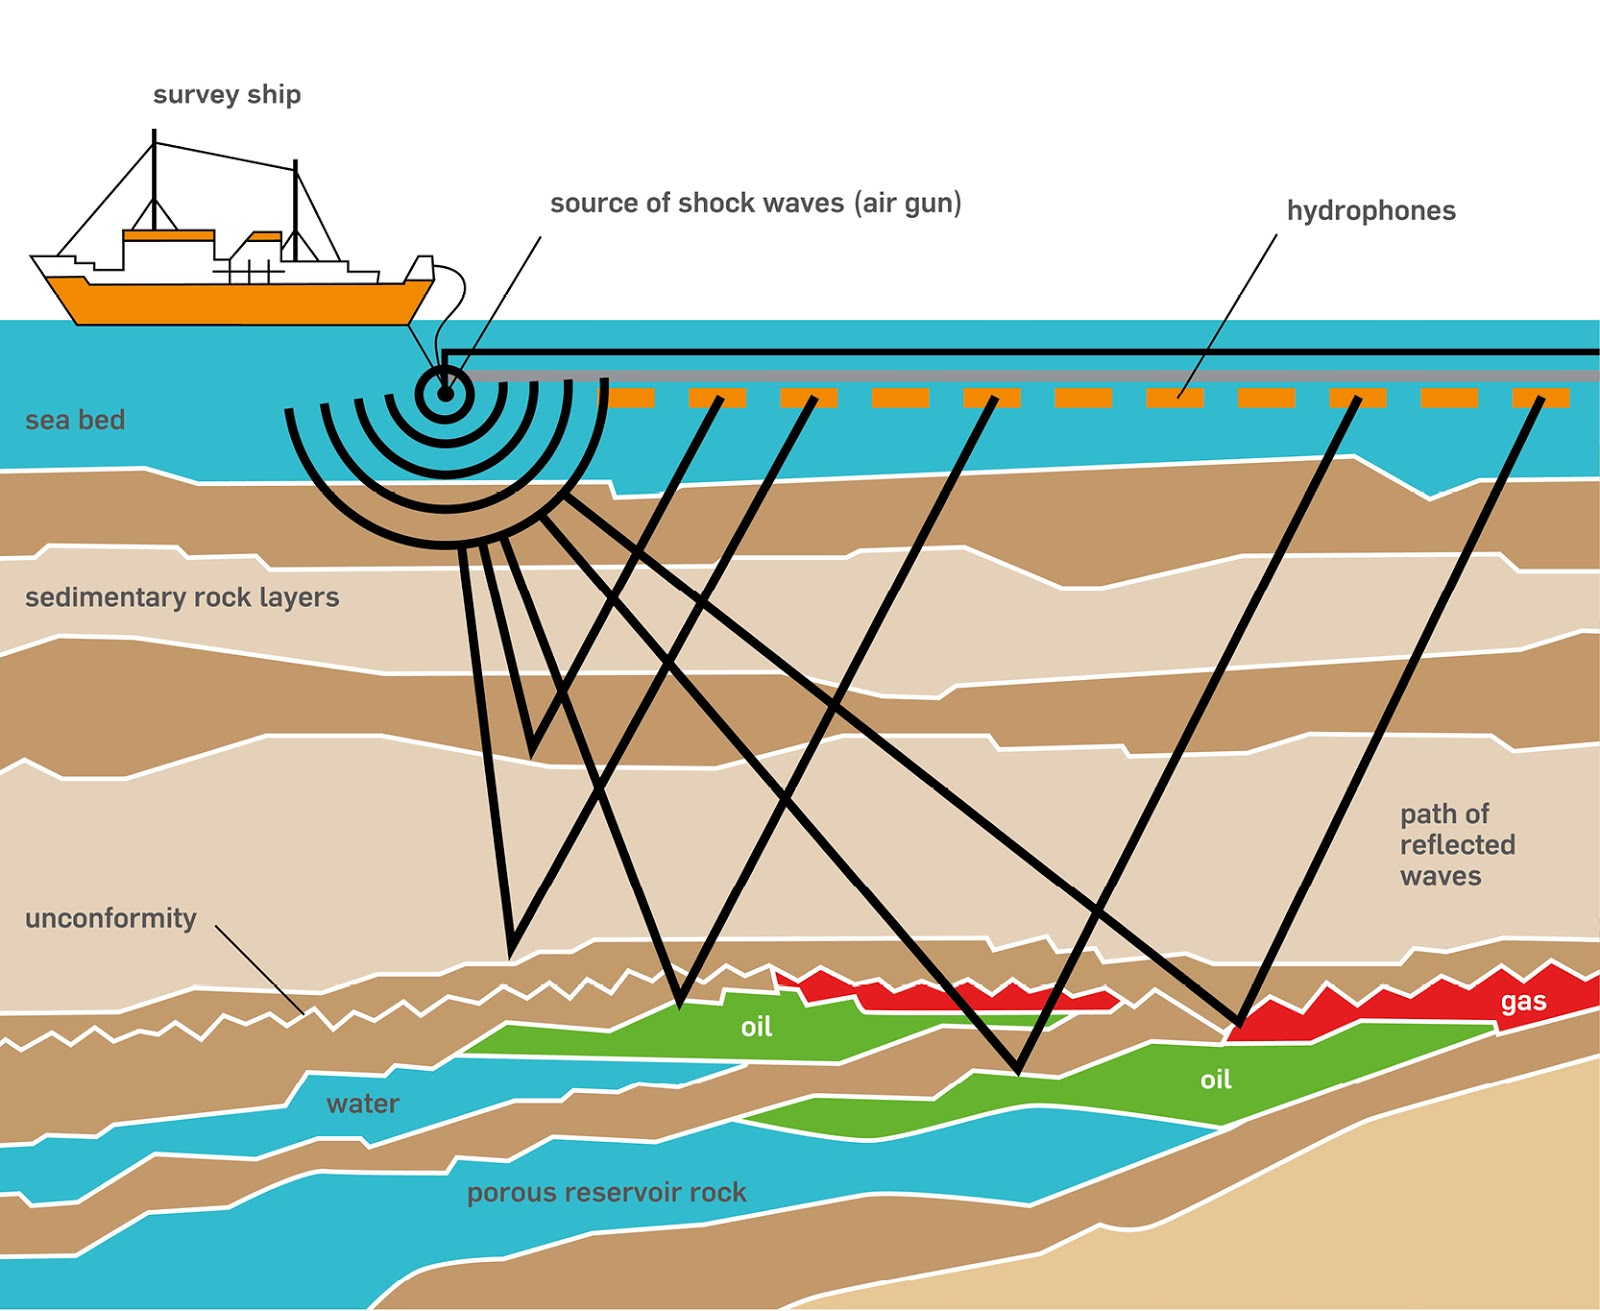 applications of remote sensing in oil exploration